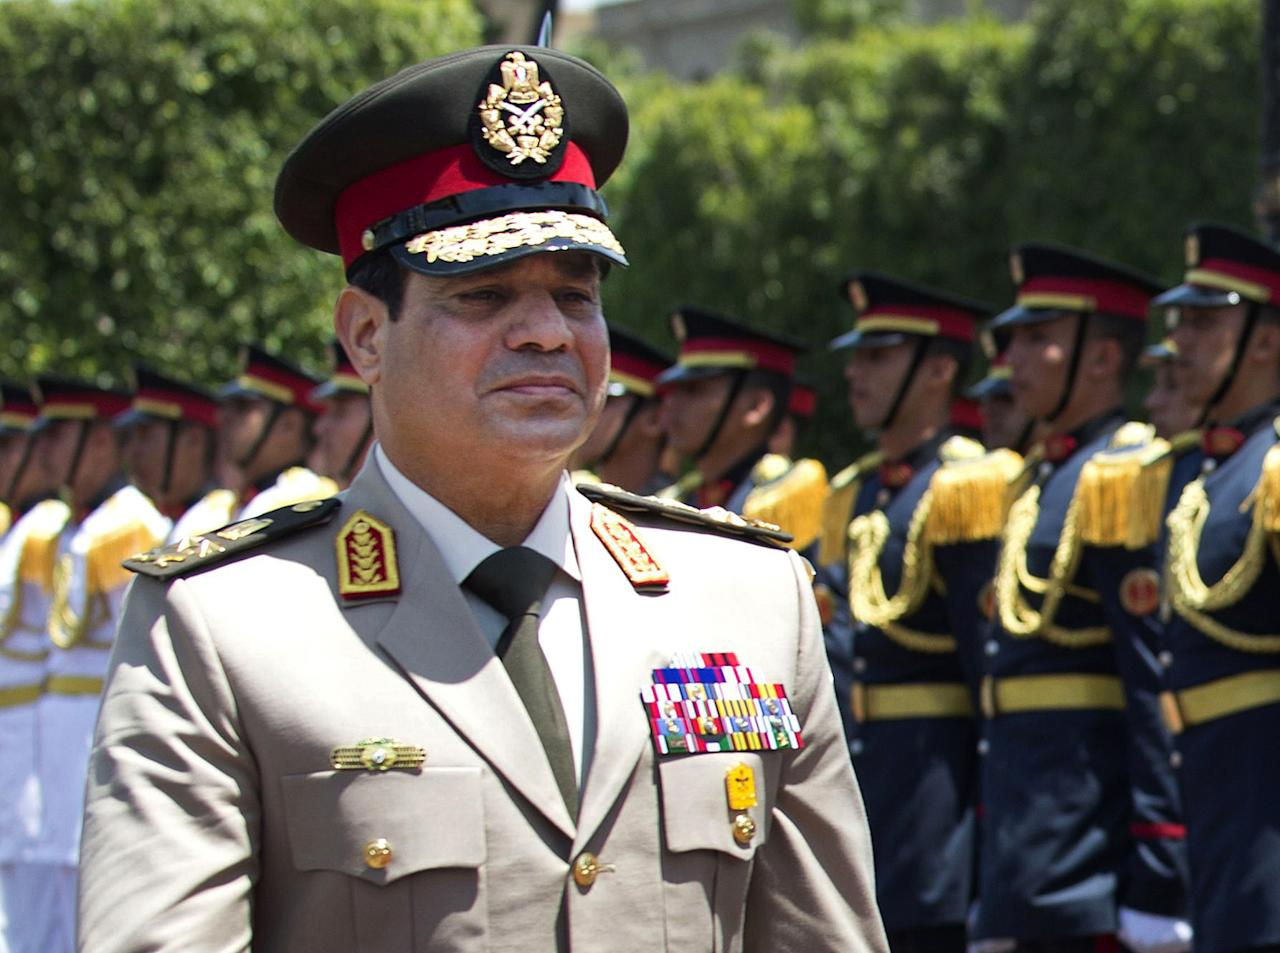 "FILE - In this Wednesday, April 24, 2013 file photo, Egyptian Defense Minister Gen. Abdel-Fattah el-Sissi reviews honor guards during an arrival ceremony for his U.S. counterpart at the Ministry of Defense in Cairo. Egypt's military chief says he ""can't turn his back"" if the majority of Egyptians want him to run for president. El-Sissi's comments, made in a speech Tuesday, March 4, 2014 to military cadets and reported by the state news agency MEAN, are his strongest yet suggesting he intends to run. (AP Photo/Jim Watson, Pool, File)"